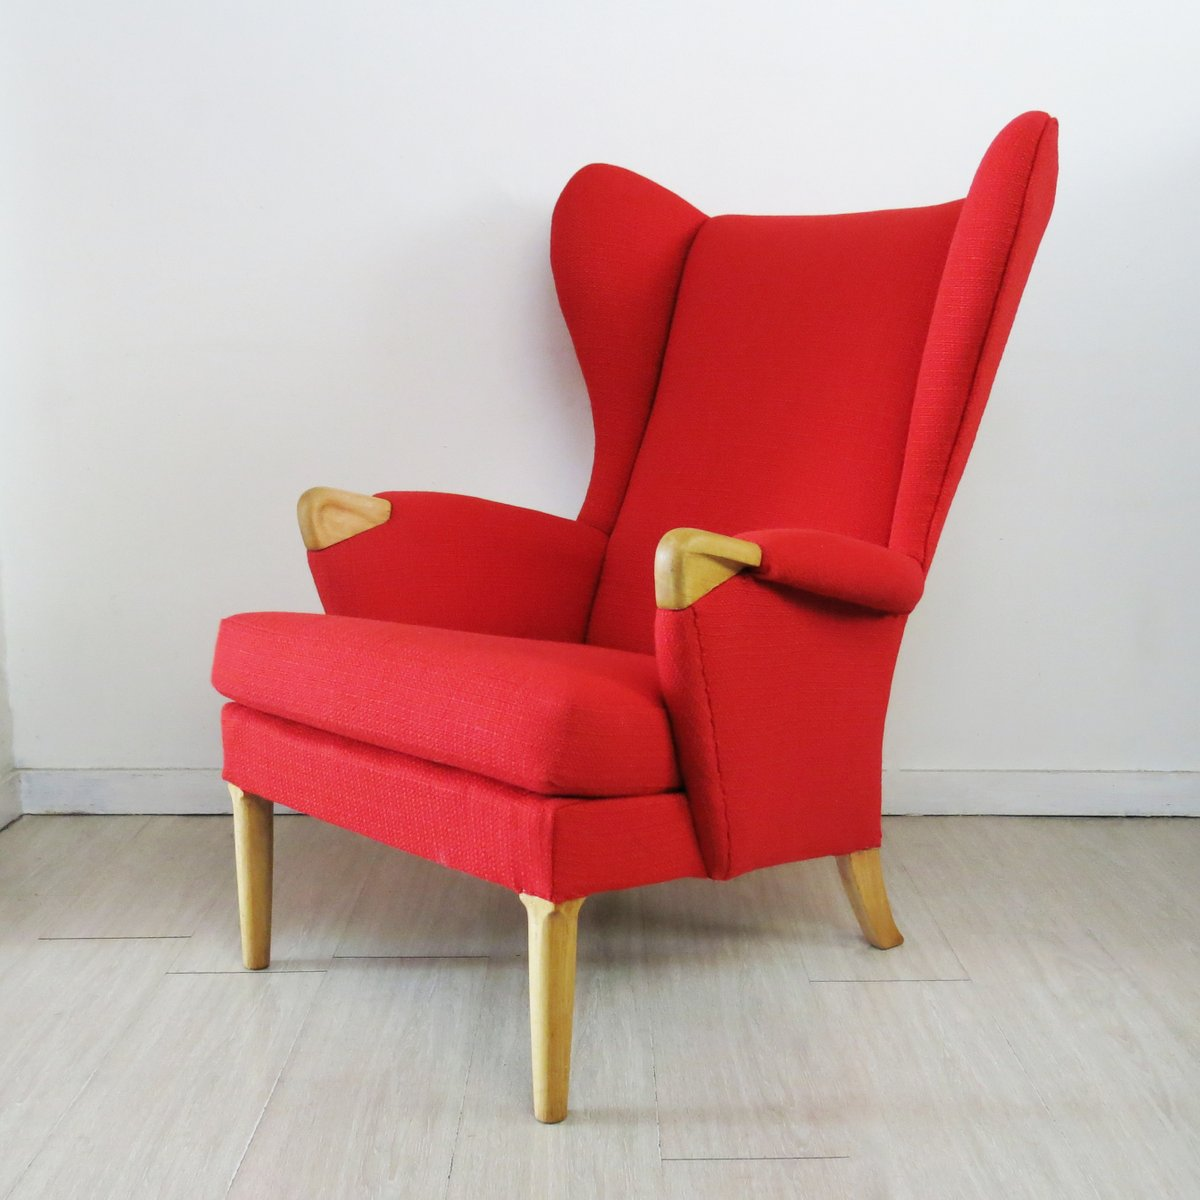 fauteuil oreilles vintage rouge de parker knoll angleterre 1960s en vente sur pamono. Black Bedroom Furniture Sets. Home Design Ideas